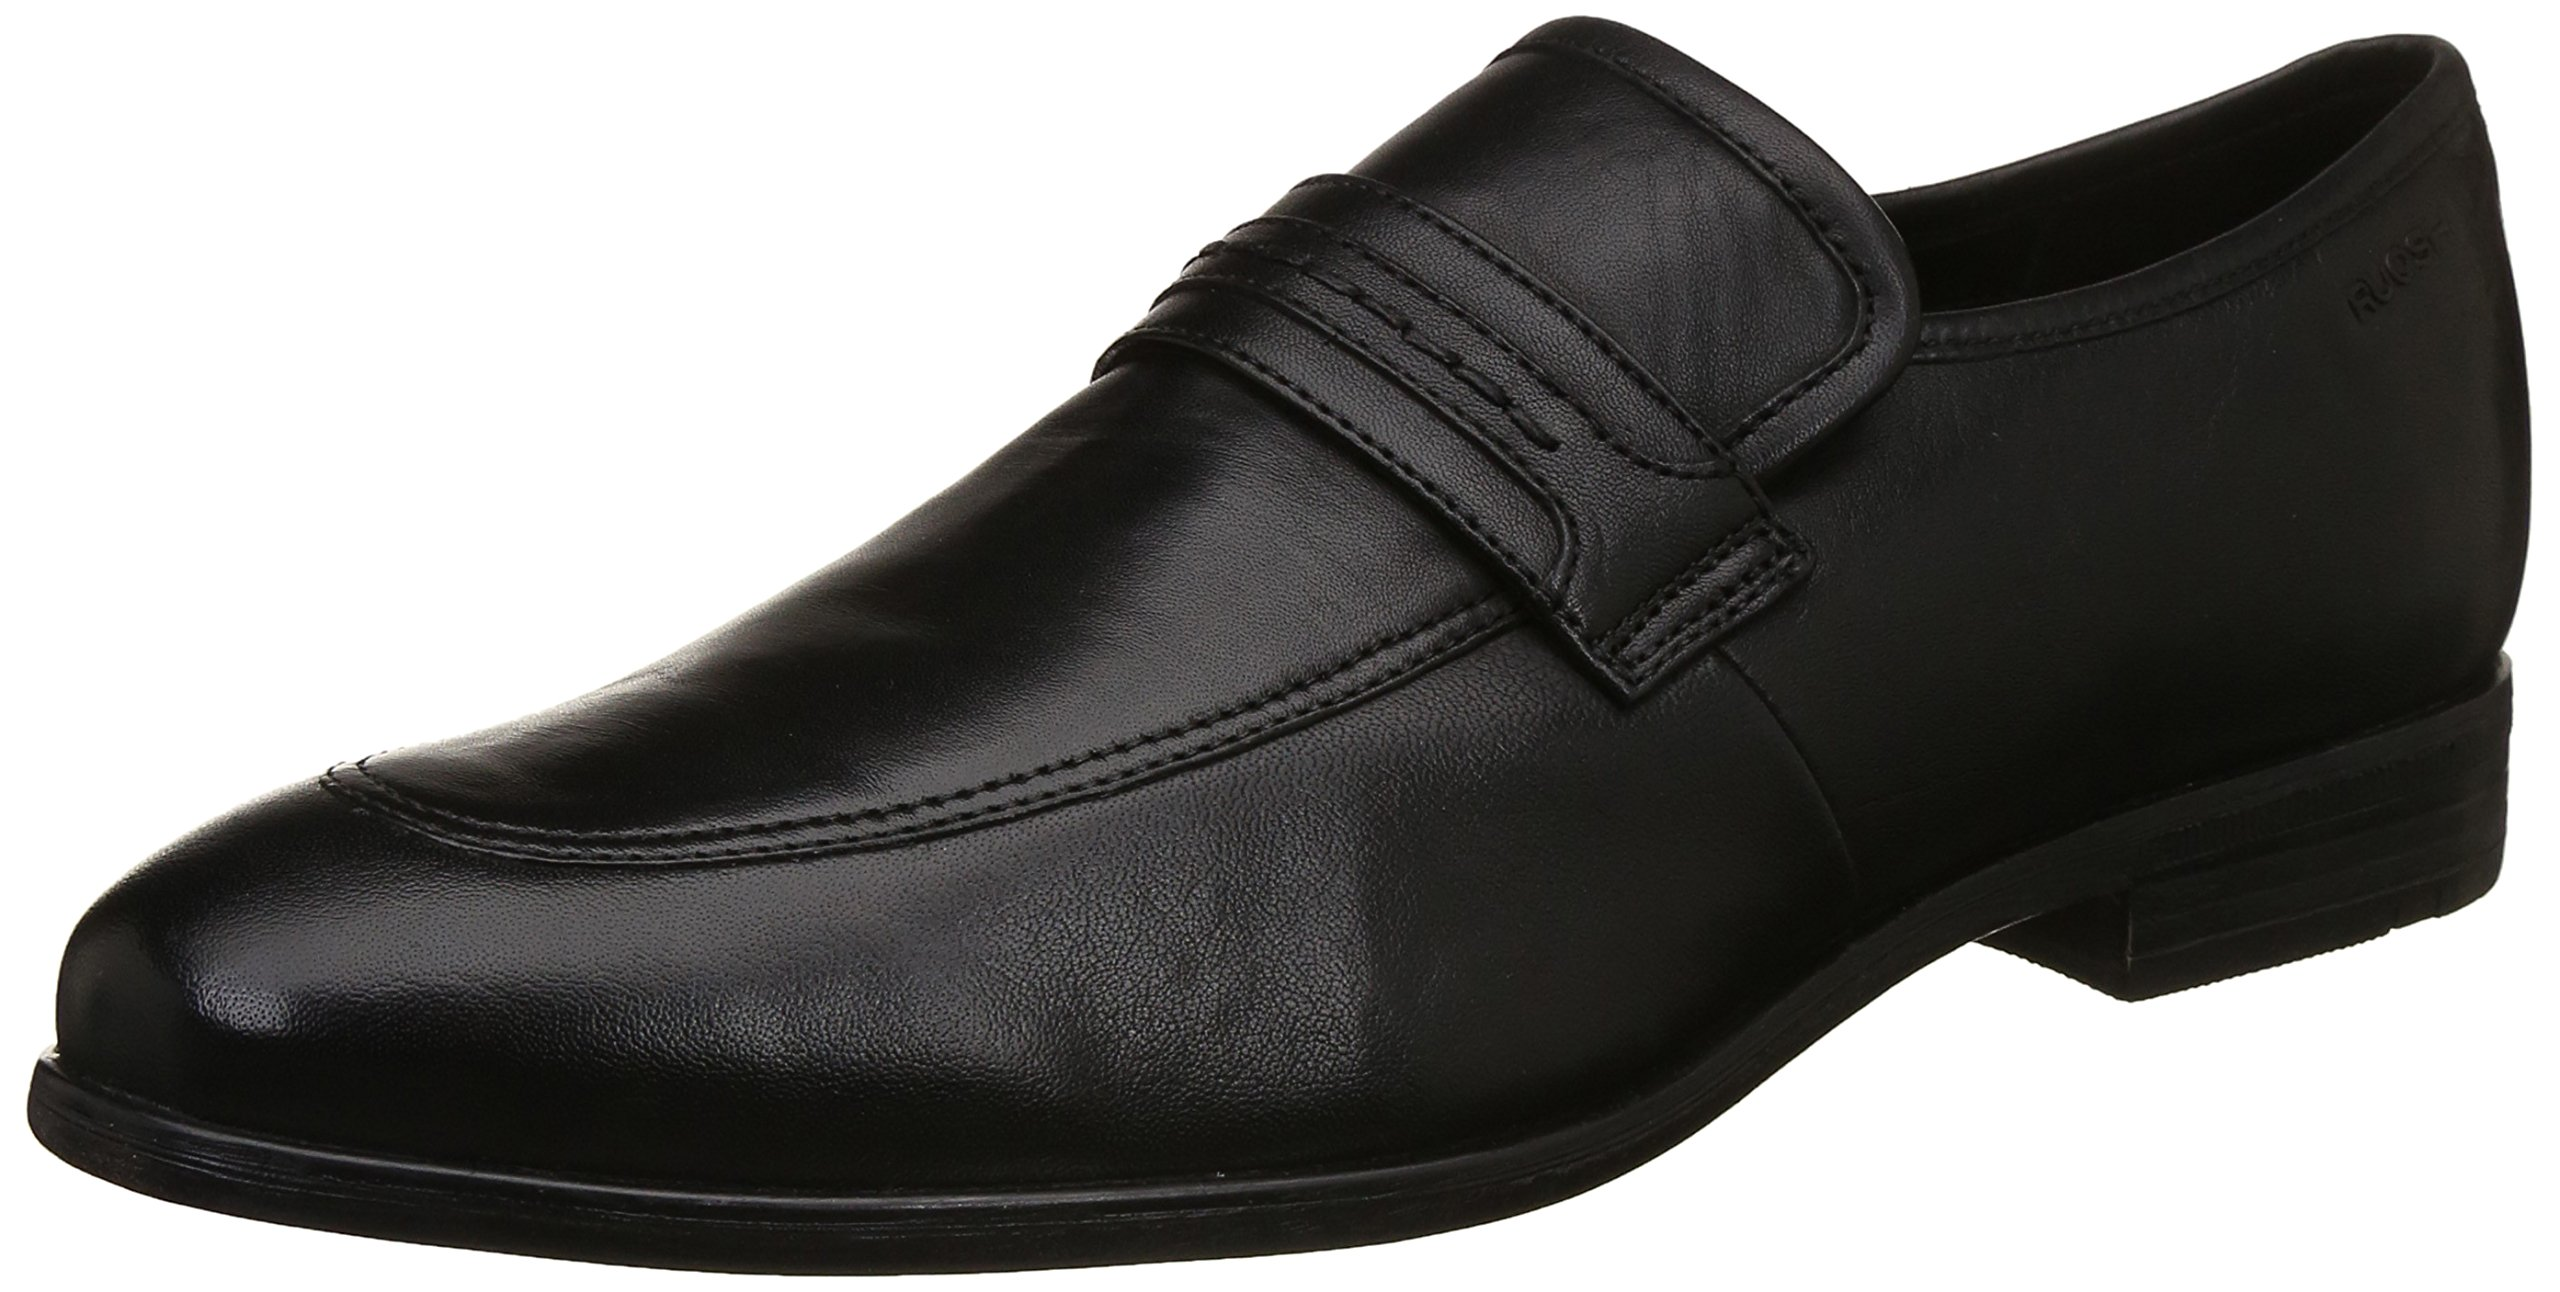 7602870ee41 Ruosh Teo Black Oxford Formal Shoes for Men online in India at Best ...